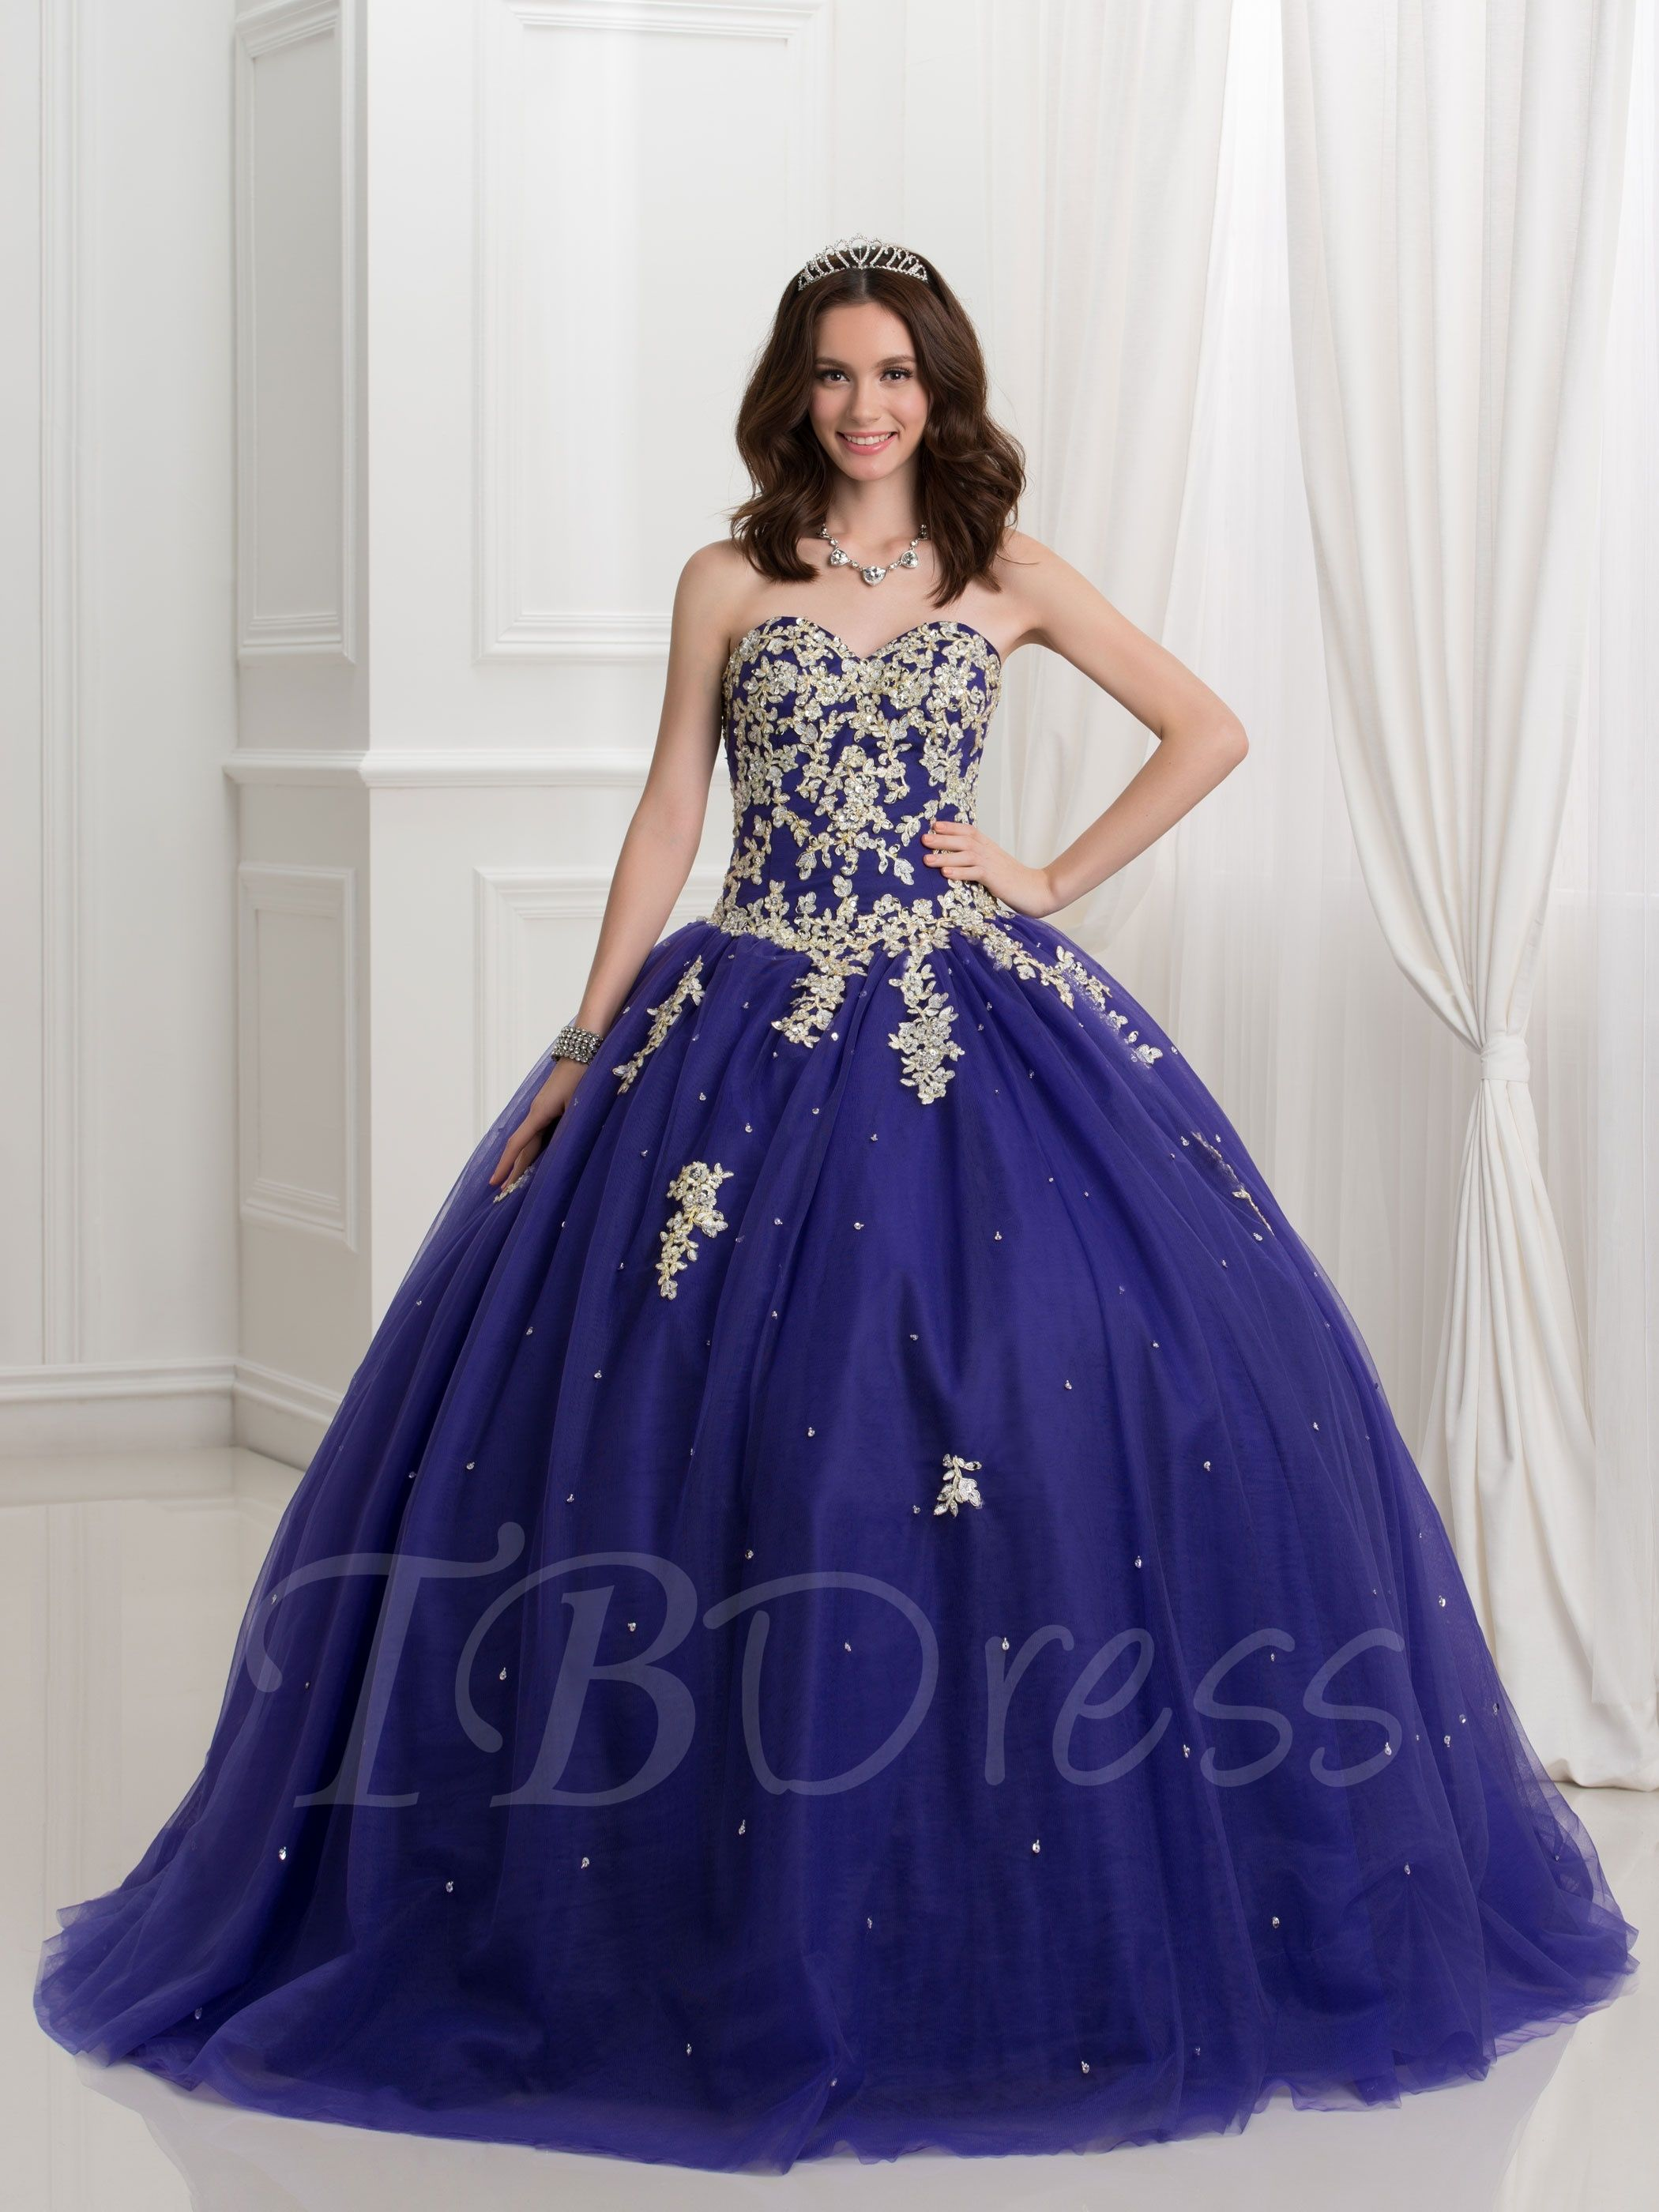 68d6c5456a0 Sweetheart Ball Gown Sequins Beaded Lace-Up Quinceanera Dress